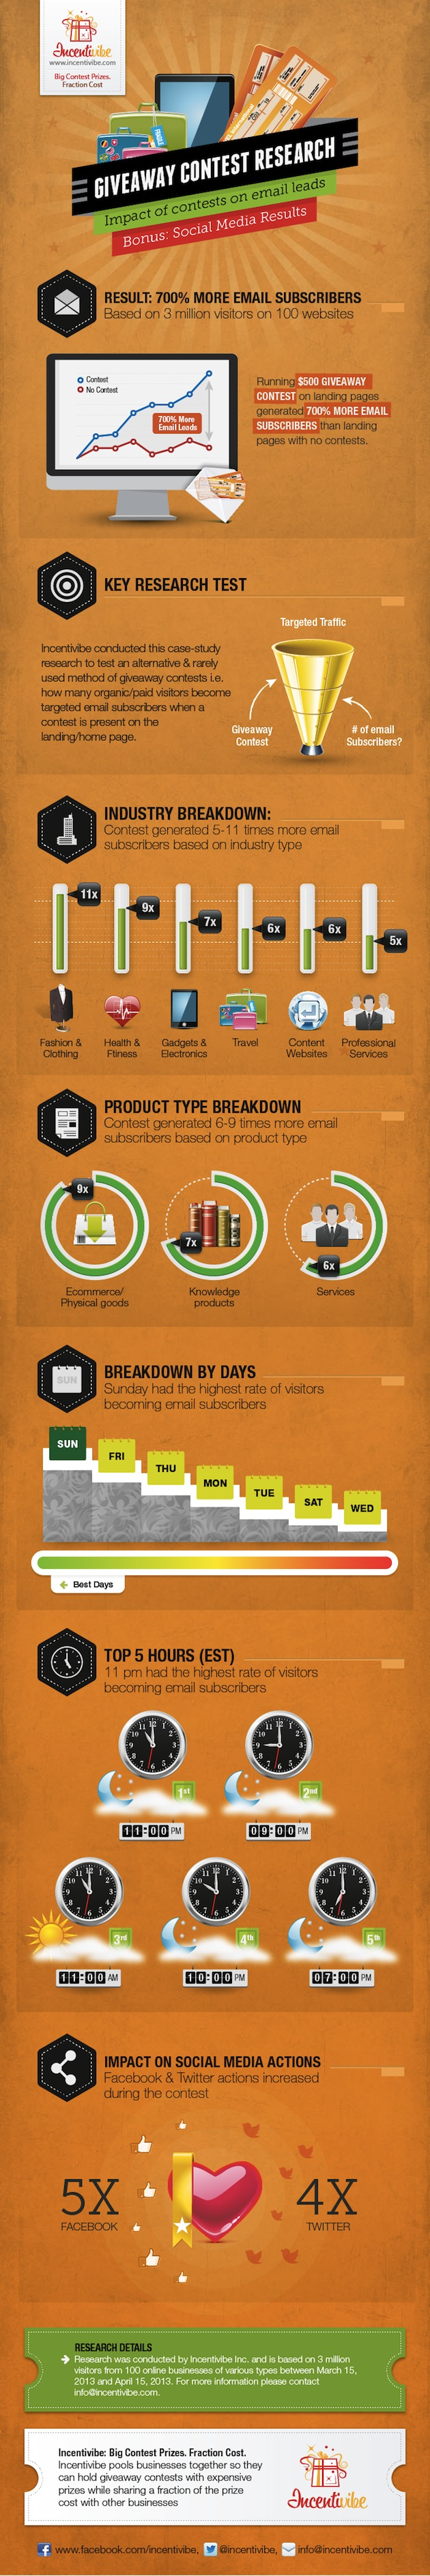 Contests for Leads-Infographic